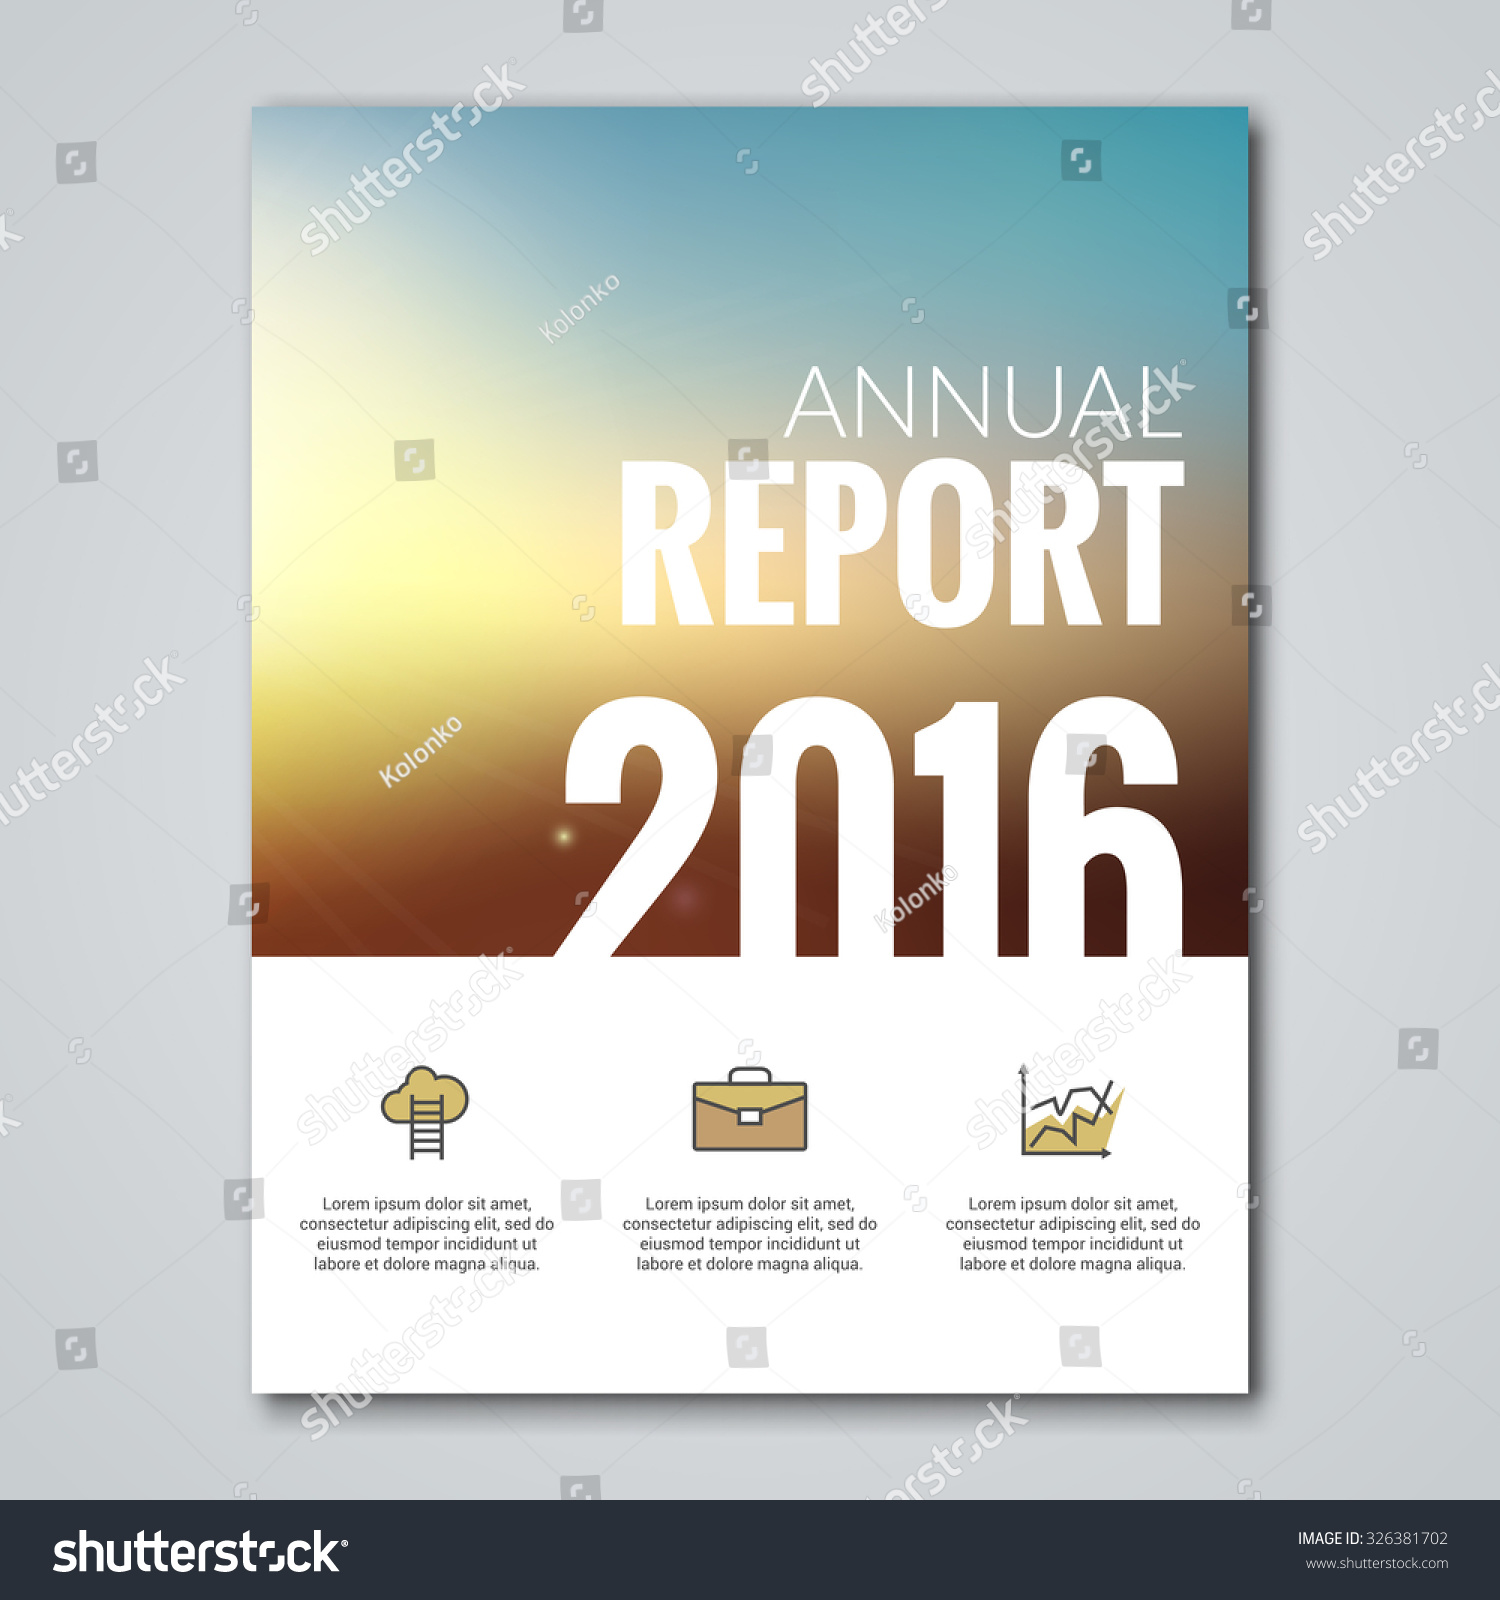 business annual report book cover brochure stock vector  business annual report book cover brochure flyer poster 2016 typography design on abstract background